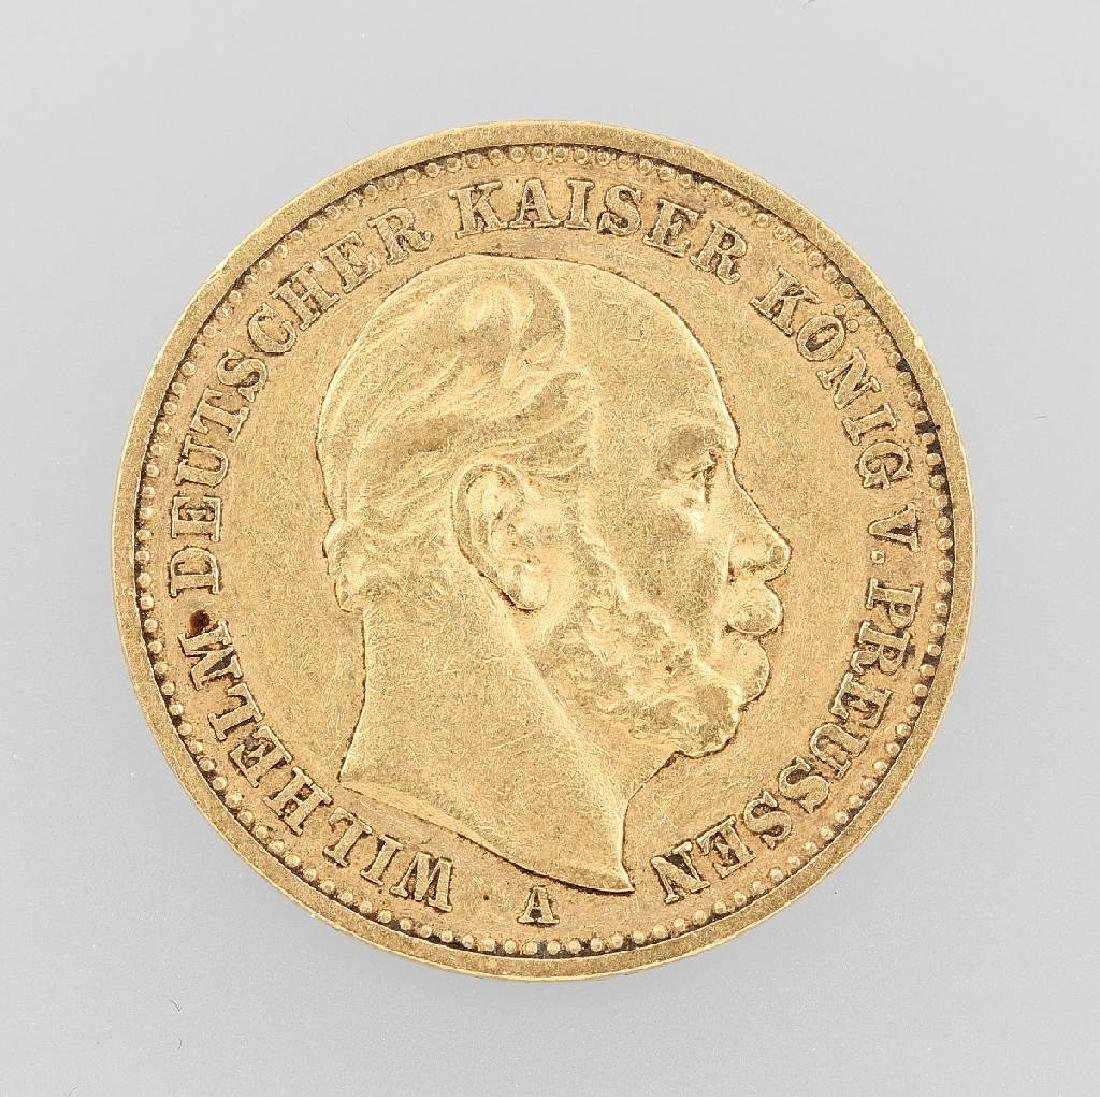 Gold coin, 20 Mark, German Reich